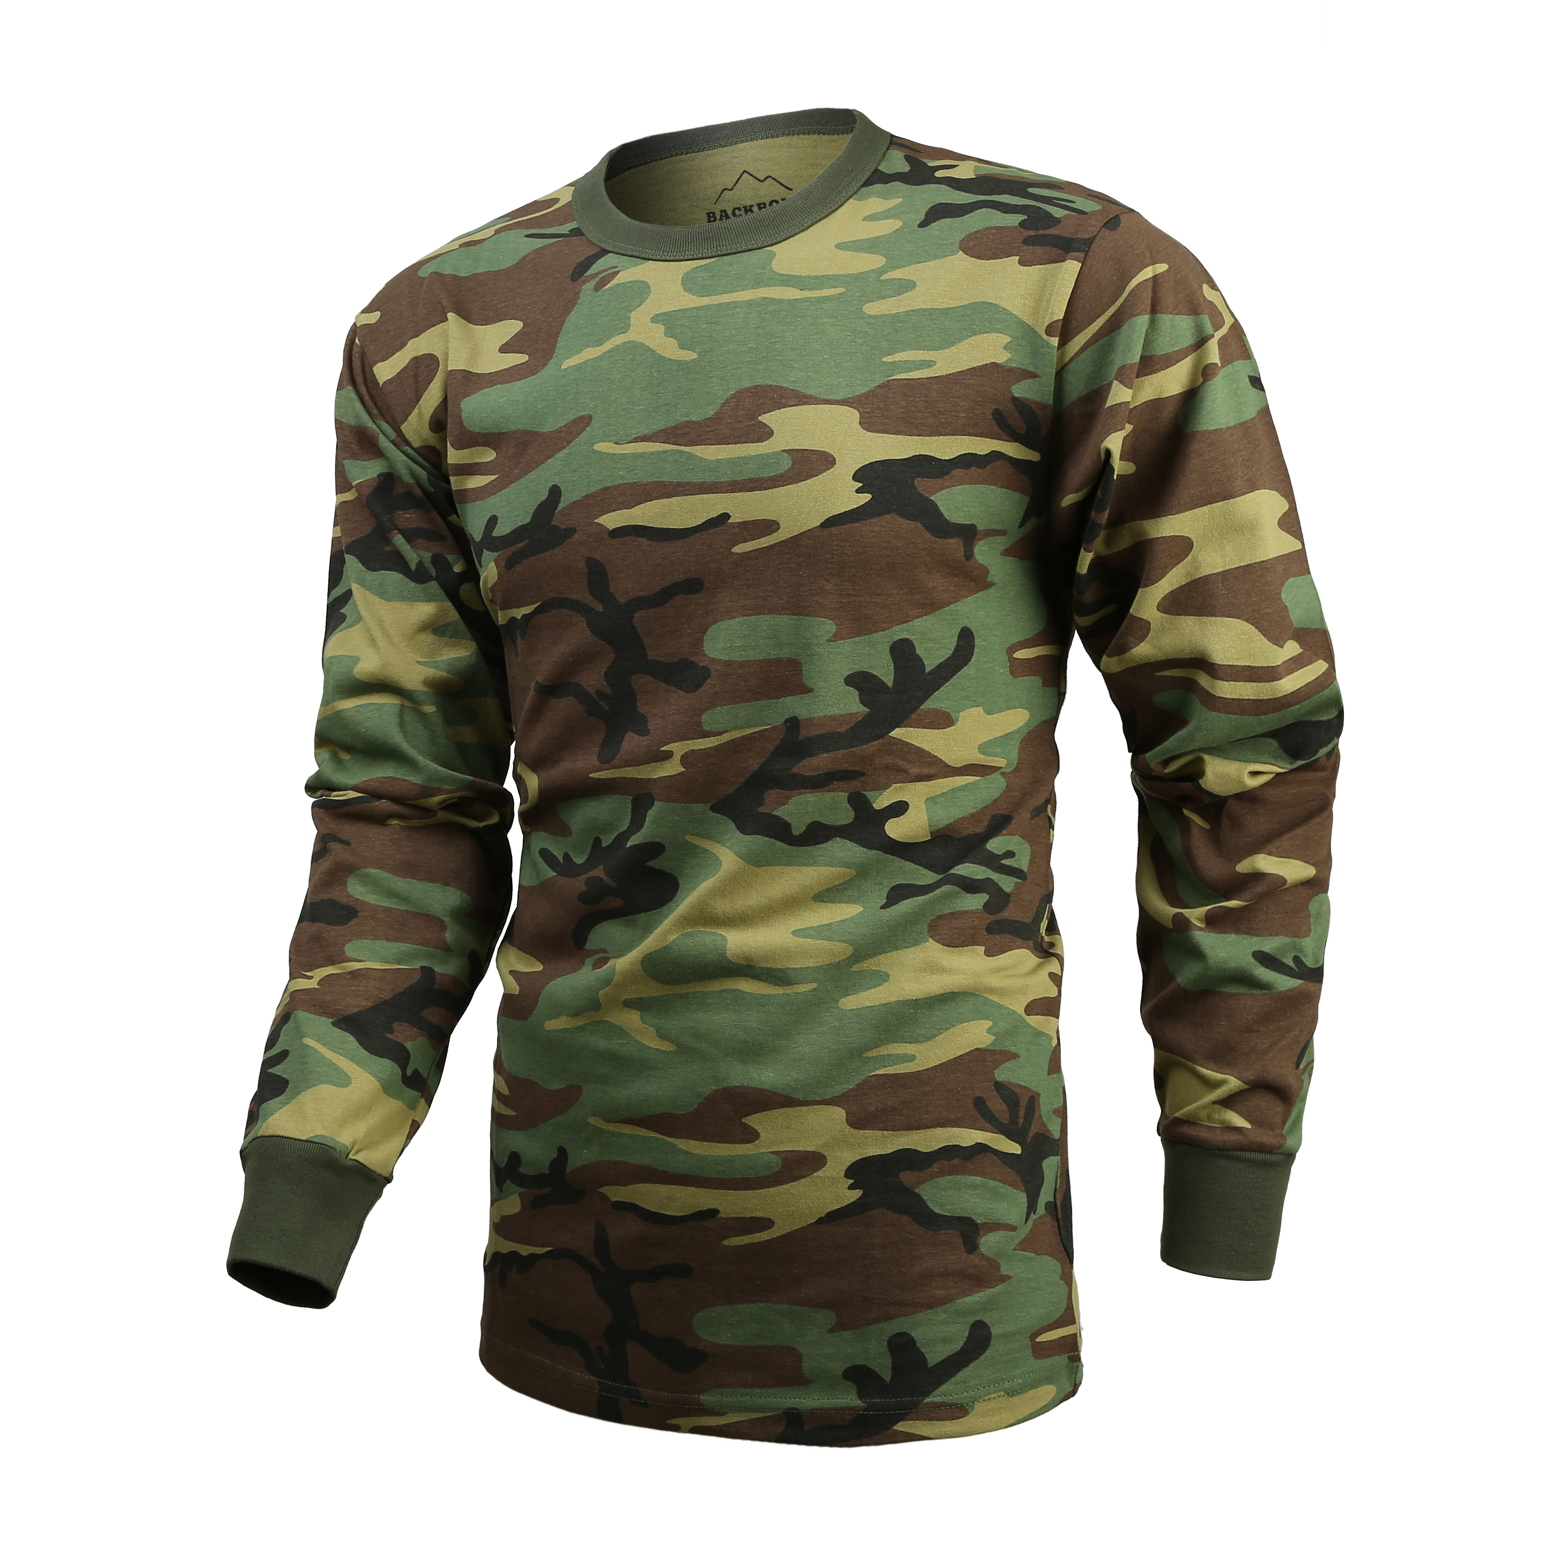 Mens Army Military Outdoor Gym Training Boot Camp Woodland Camo Long Sleeve T-SHIRT Tee